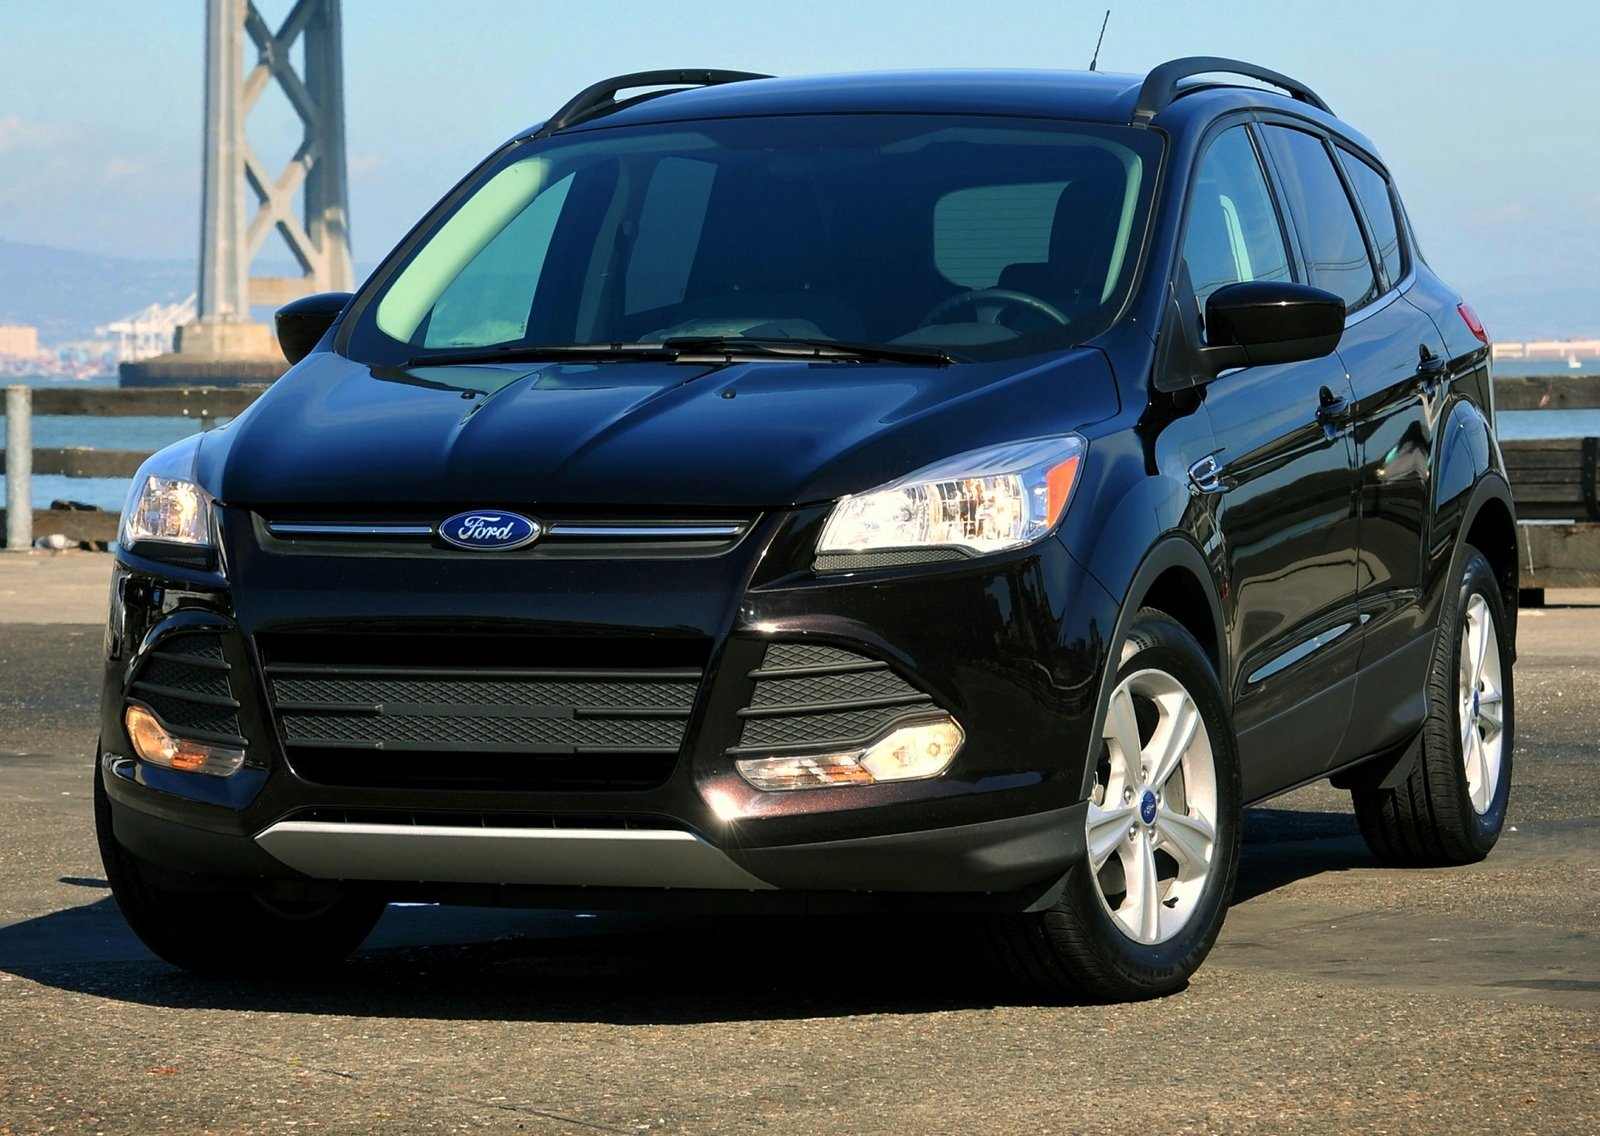 2014 ford escape picture 522540 car review top speed. Cars Review. Best American Auto & Cars Review